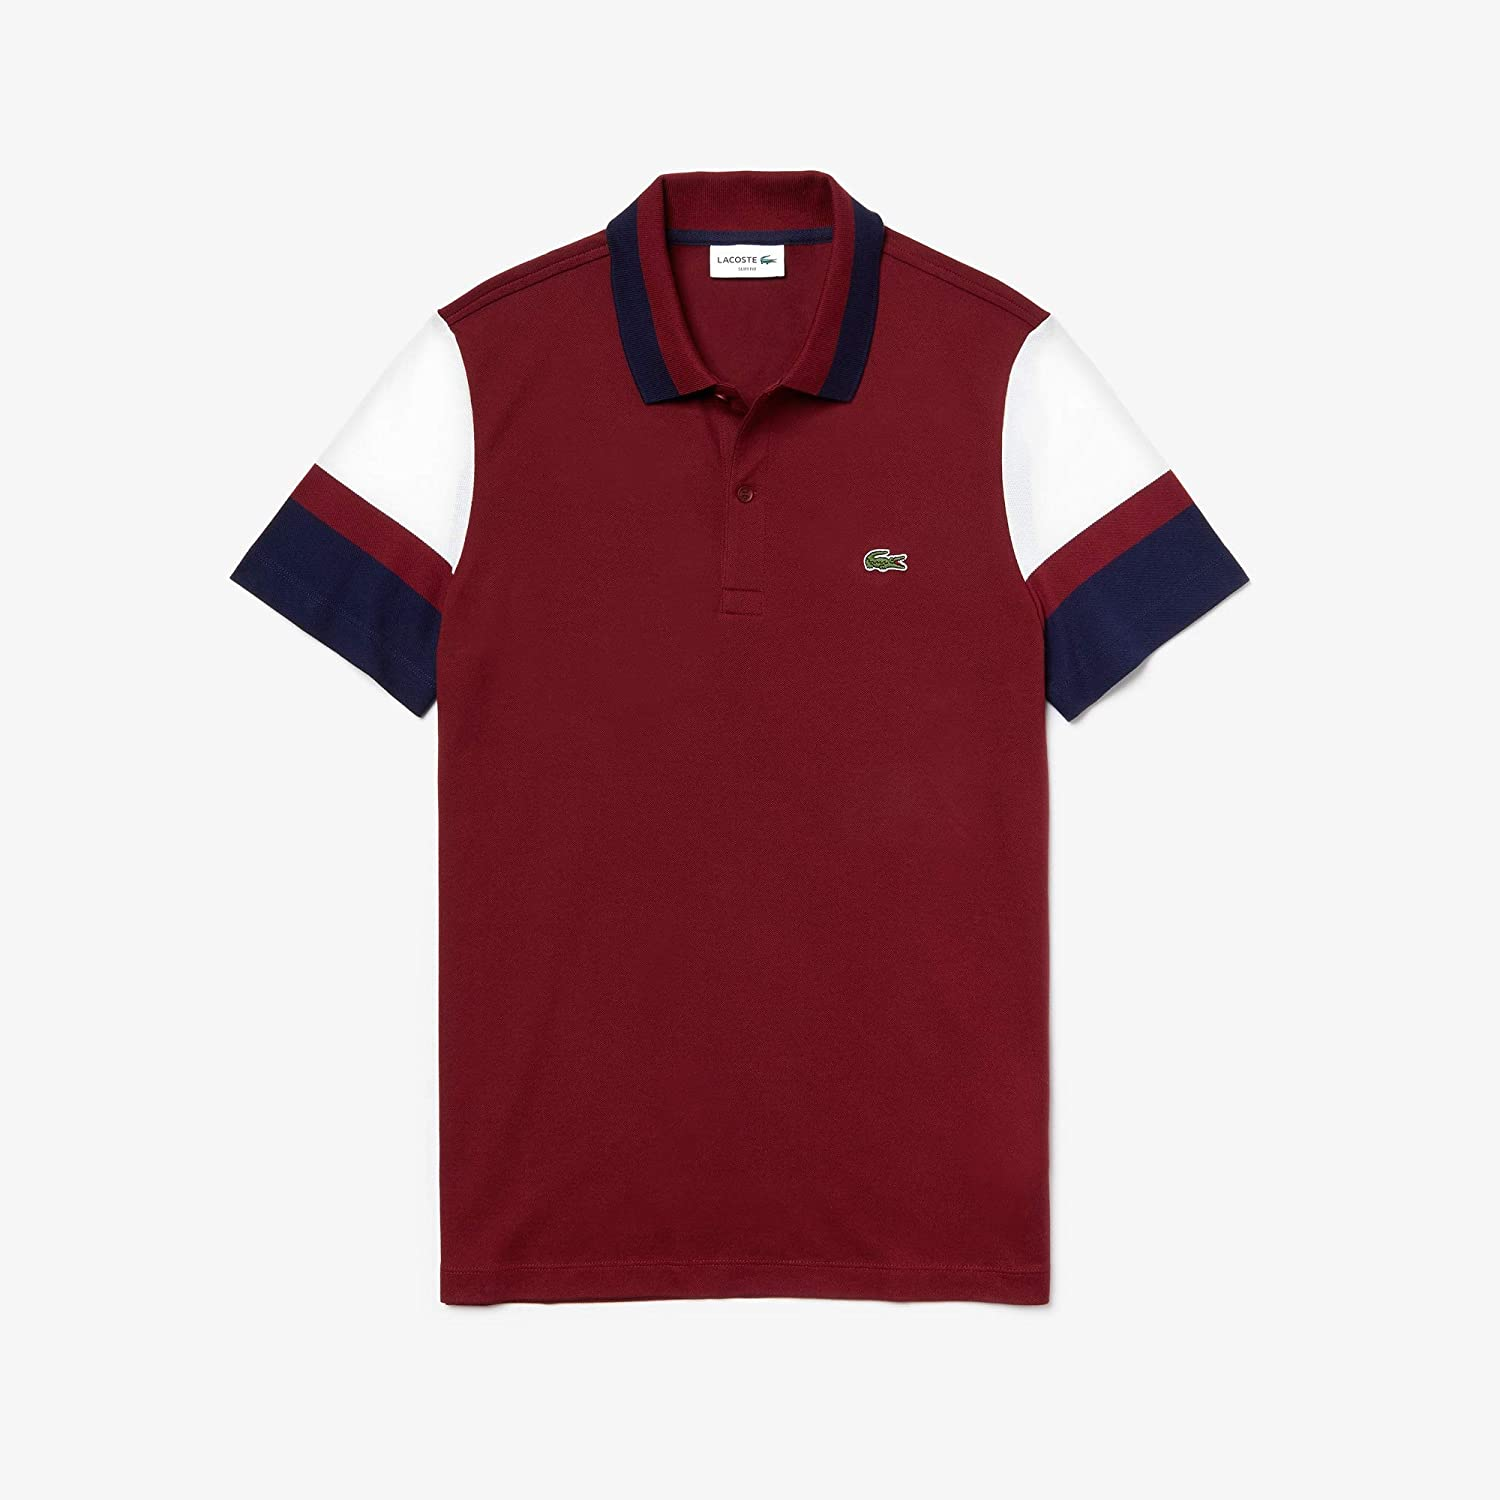 Rouge (Pinot Farine-marine Lxt) X-grand  Lacoste Ph4223 - Polo - Homme